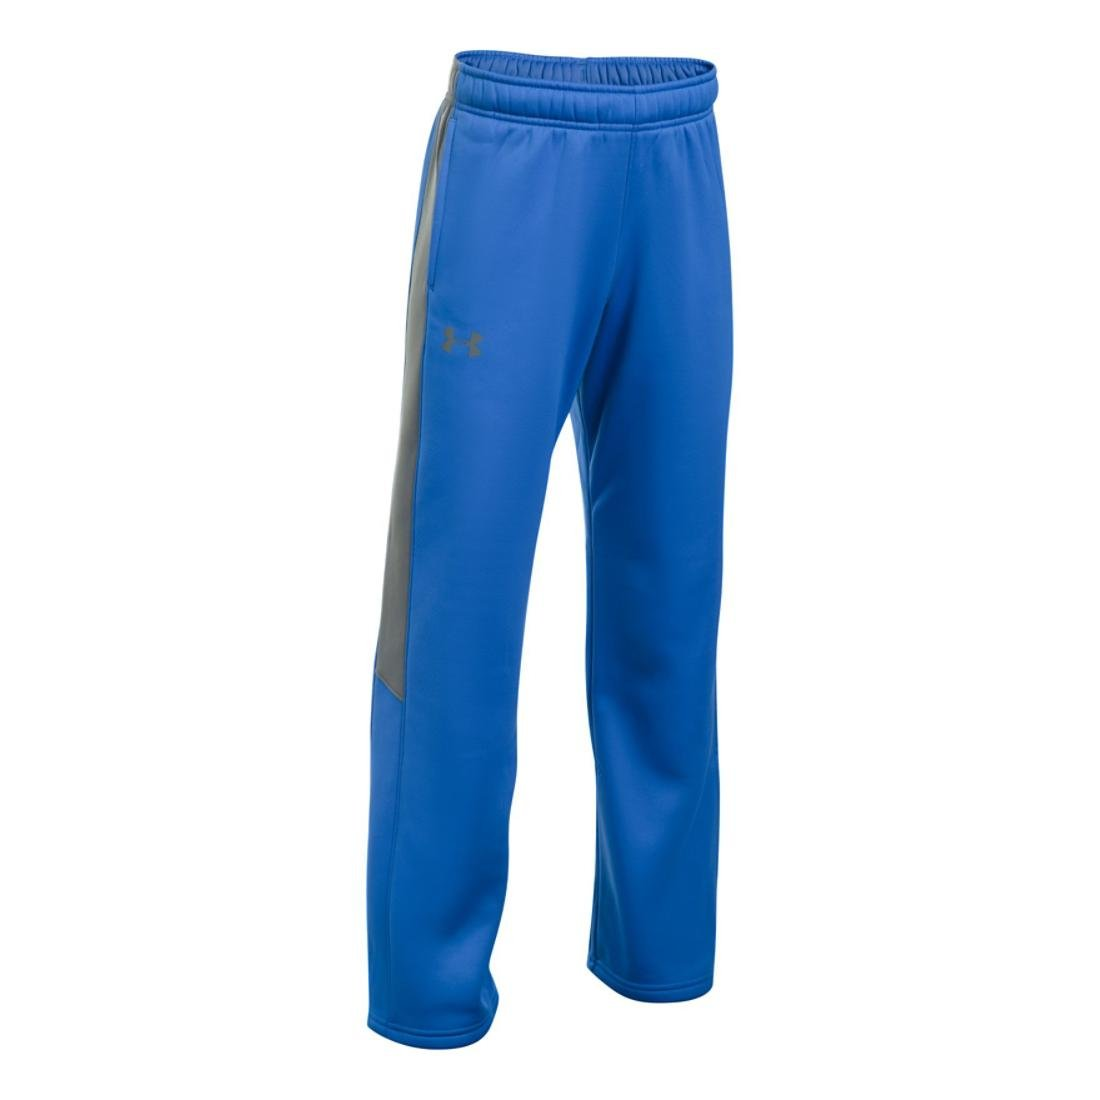 Under Armour Boys PS Armour Fleece Pant, Blue/Graphite, Youth X-Large by Under Armour